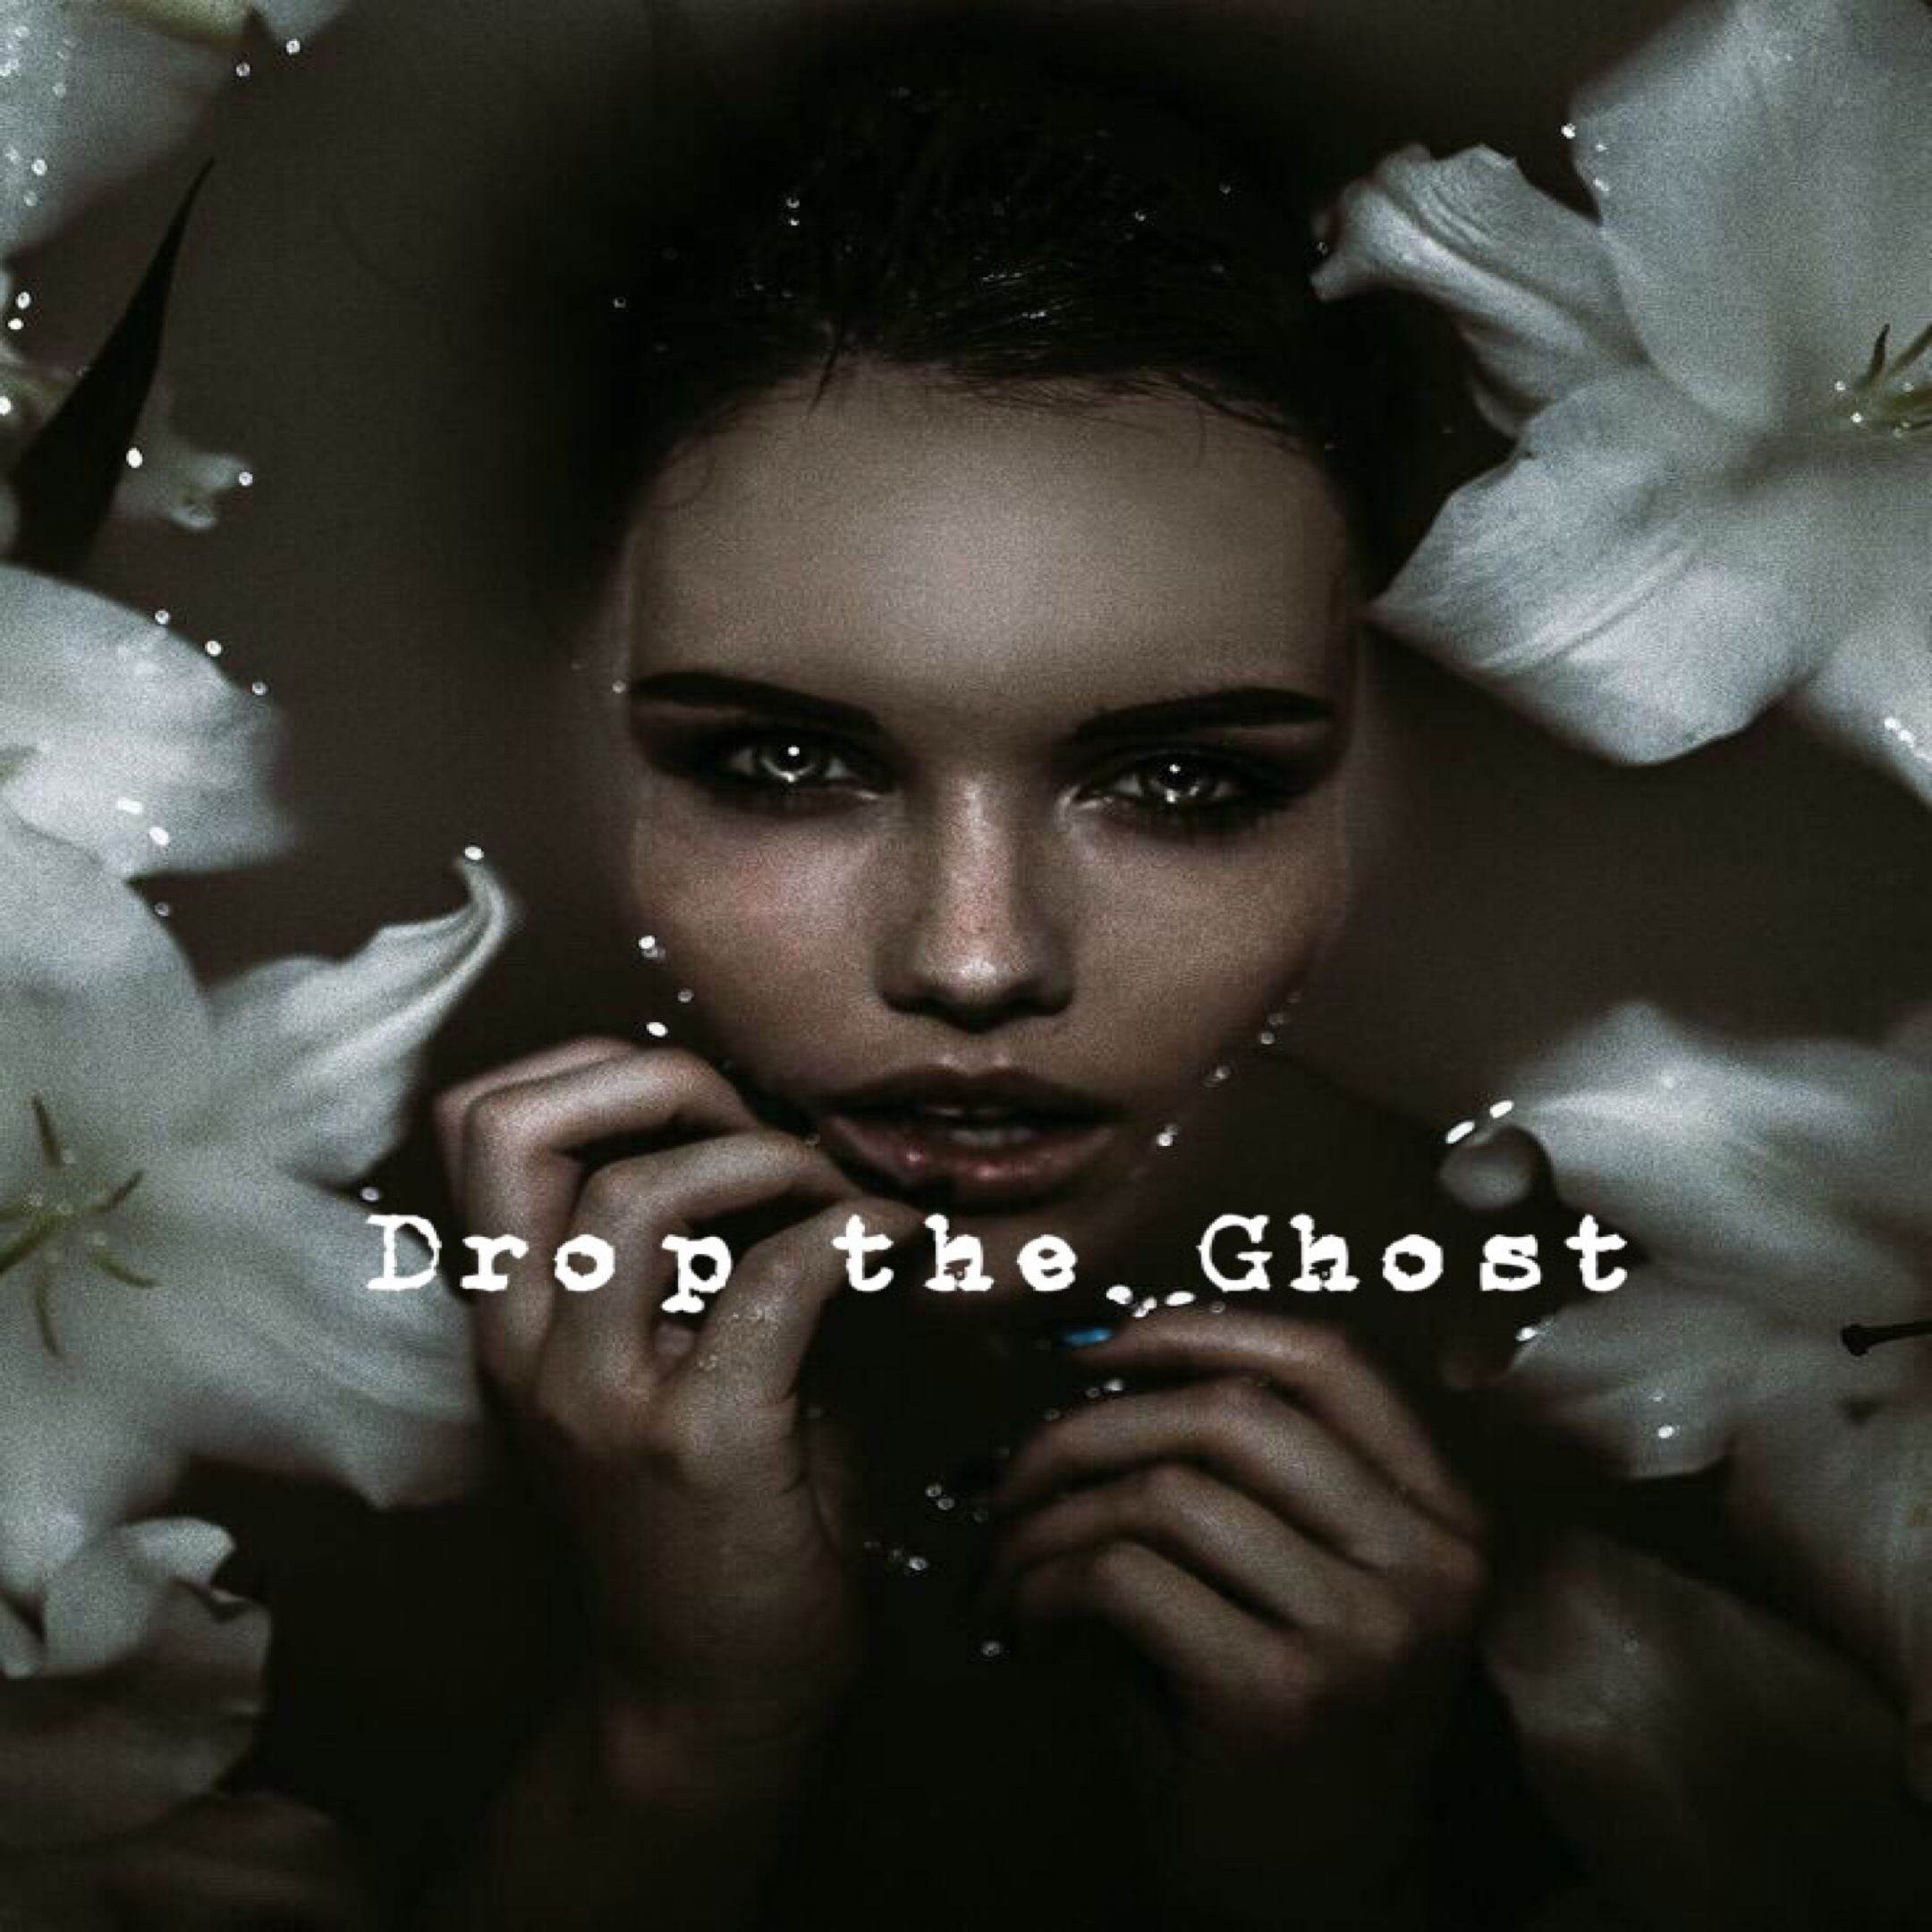 Drop the Ghost